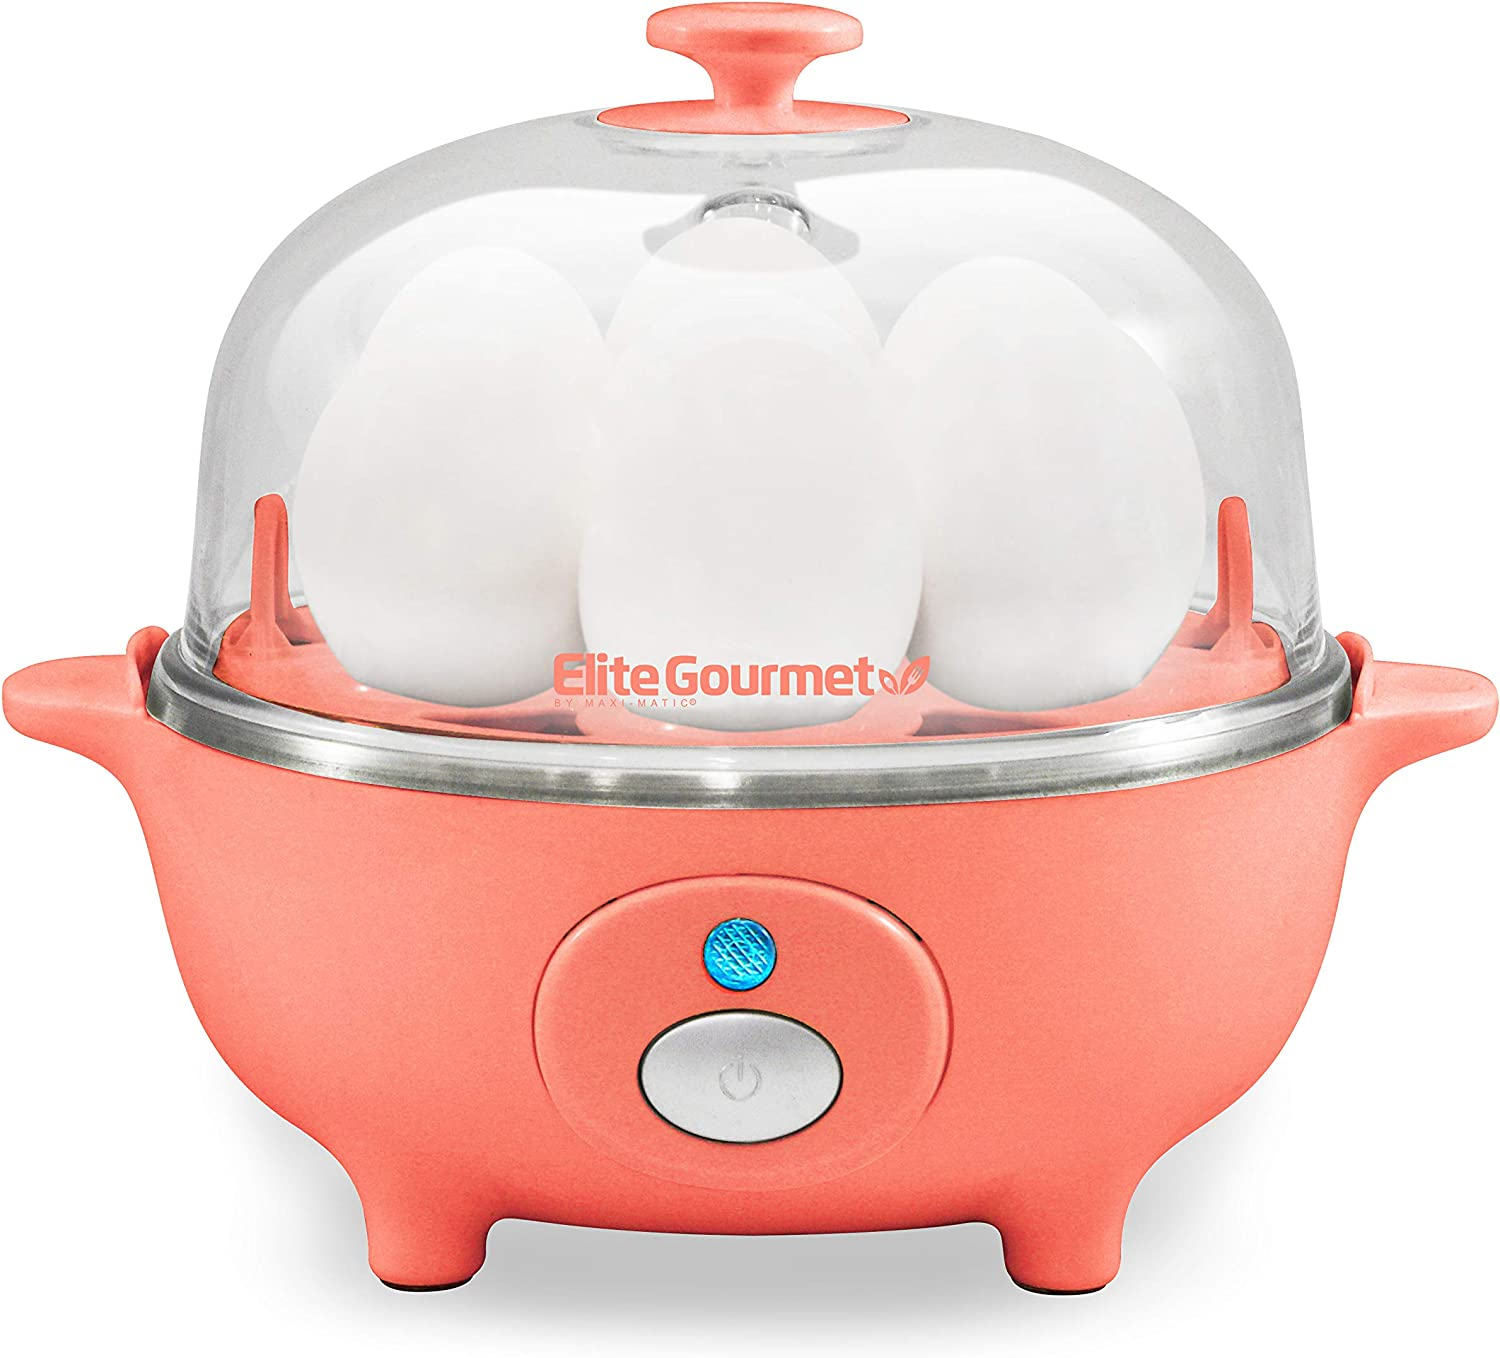 Elite Gourmet EGC-007C Easy Electric Poacher, Omelet Eggs & Soft, Medium, Hard-Boiled Egg Boiler Cooker with Auto Shut-Off and Buzzer, Measuring Cup Included, BPA Free, 7, Coral